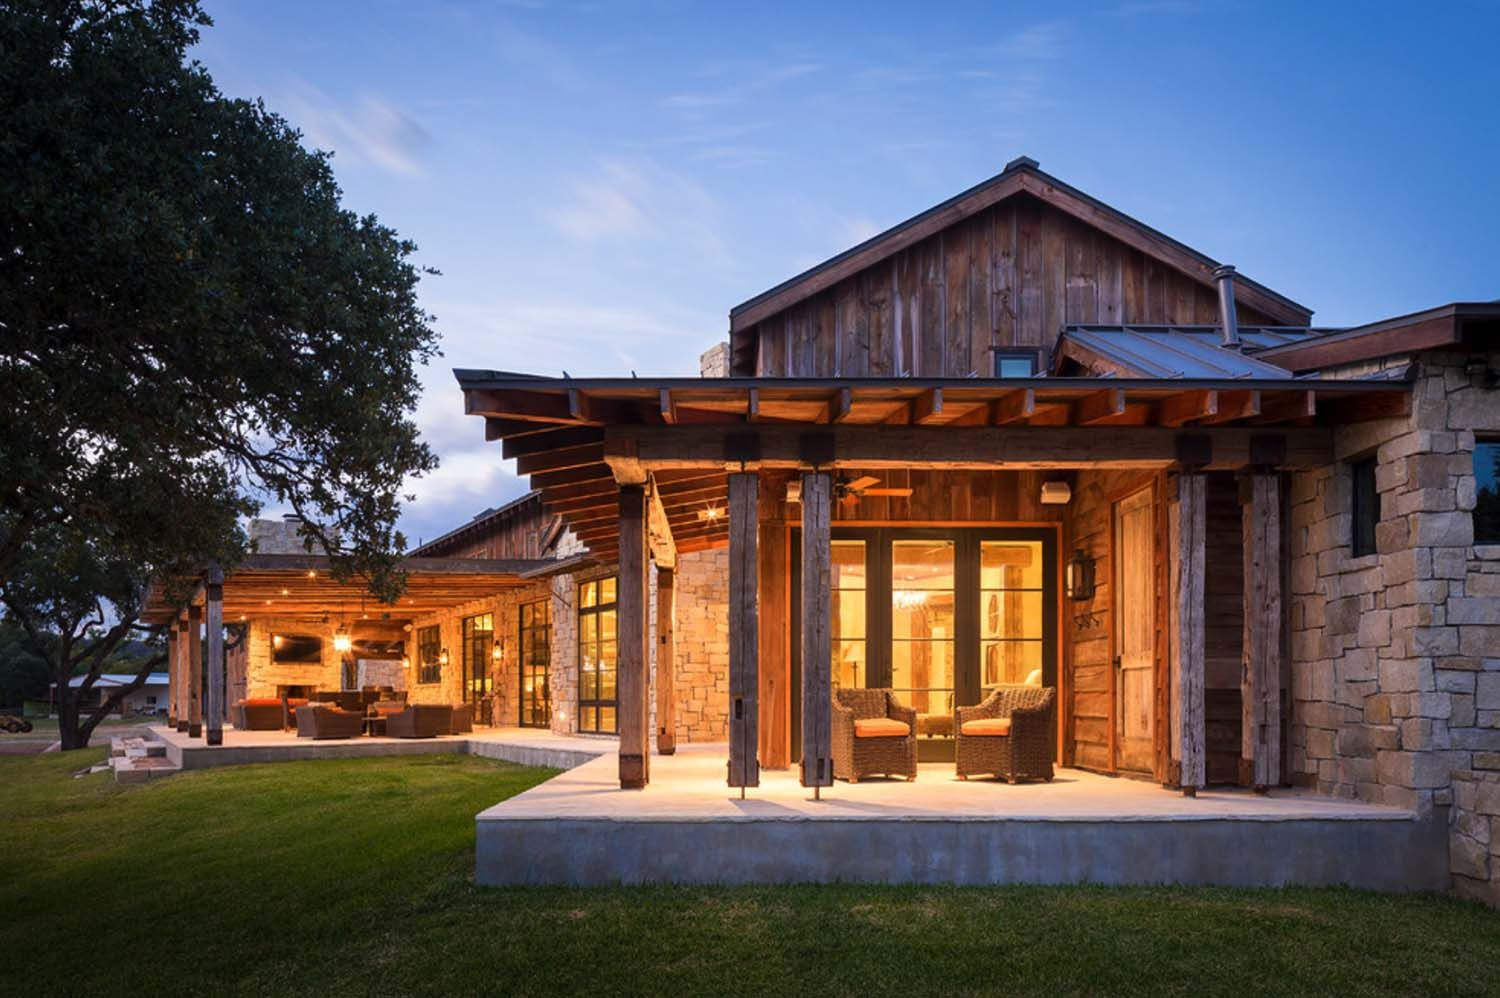 Modern rustic barn style retreat in texas hill country for Texas farmhouse plans